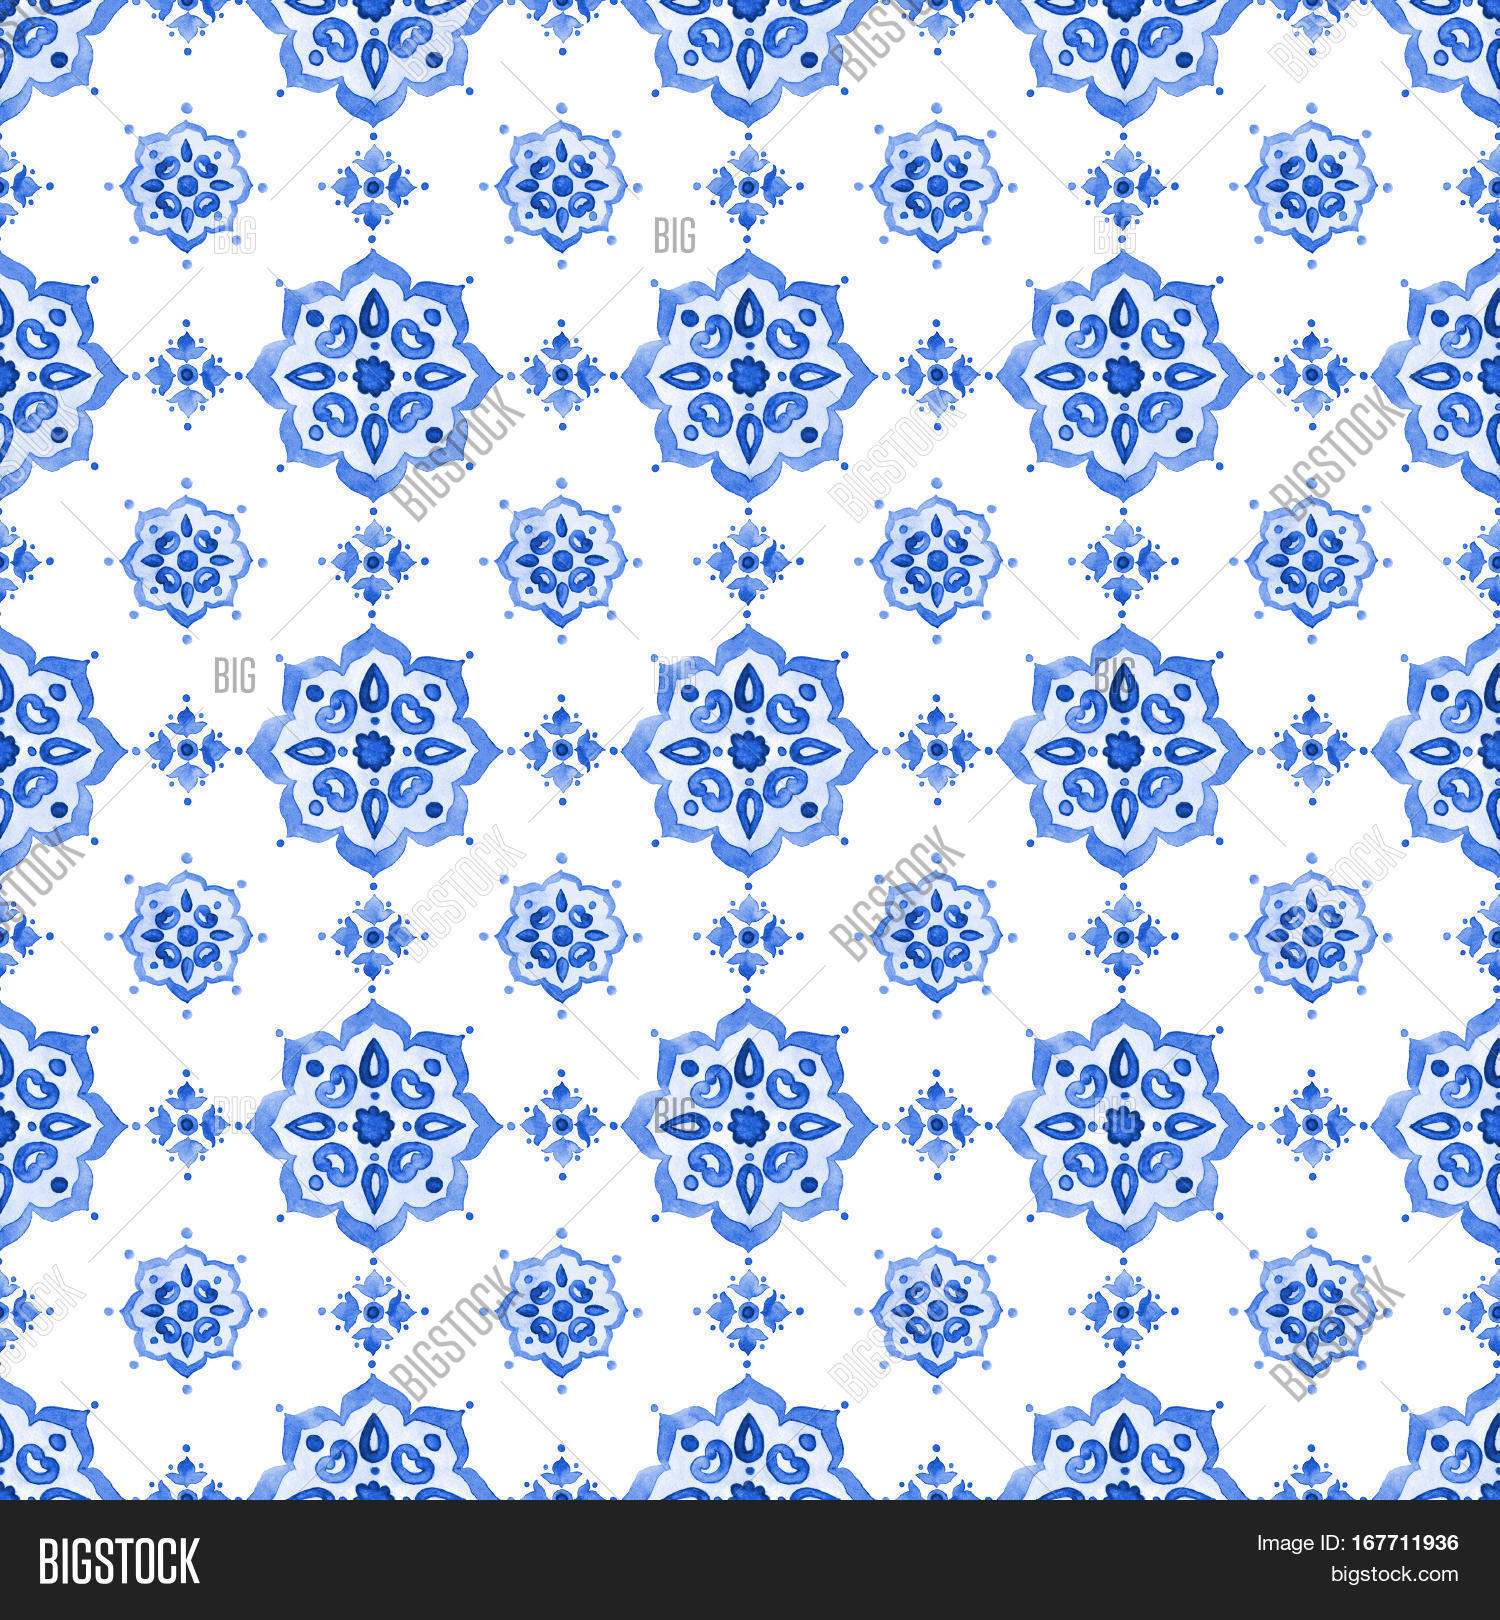 amsterdam,aquarelle,backdrop,background,blue,boho,cobalt,crockery,decoration,decorative,delft,delftware,dishes,drawing,dutch,element,endless,fabric,holland,illustration,indigo,intricate,loose,modern,motive,navy,netherlands,old,ornament,pattern,repeat,retro,sapphirine,style,tableware,textile,texture,tile,traditional,utensil,vintage,wall,water,watercolor,watercolour,wet,white